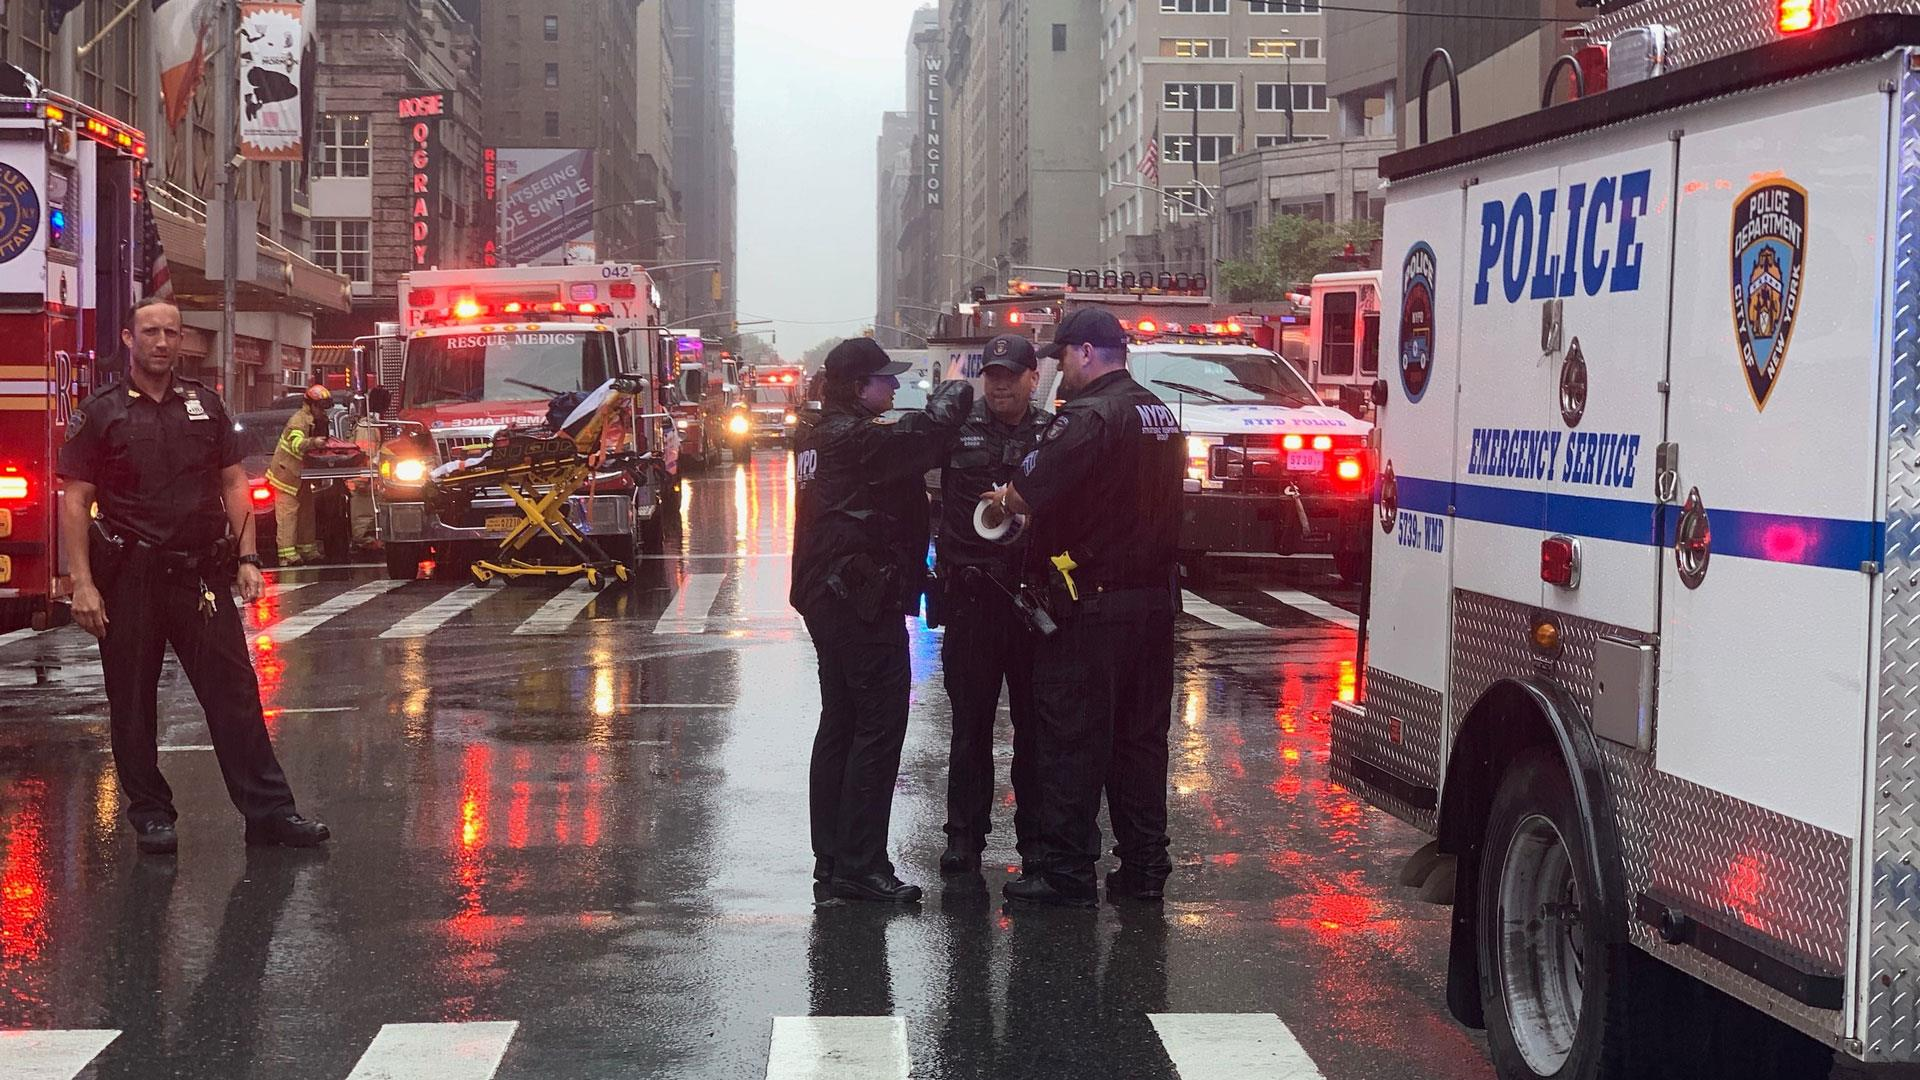 NYC helicopter crash rare for city with heavy air traffic